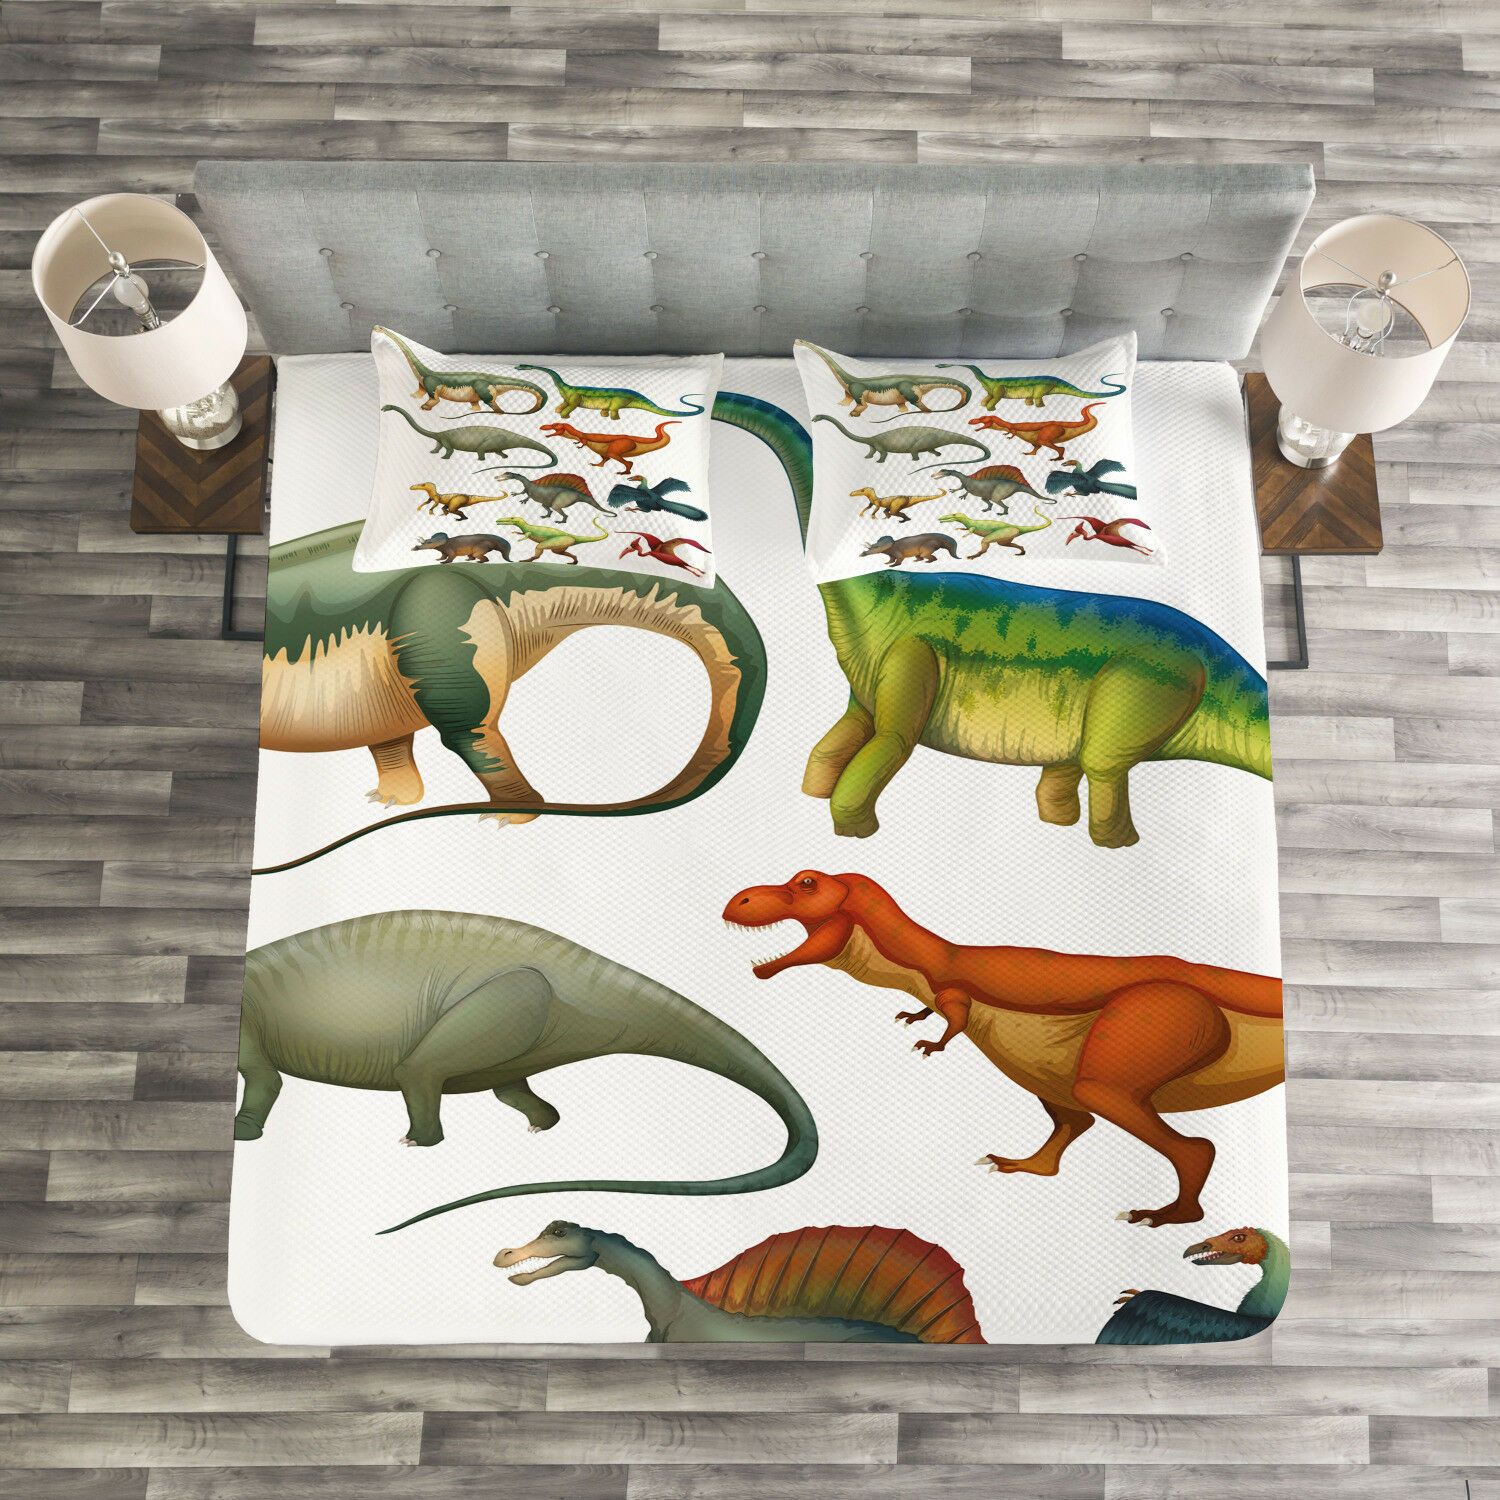 Dinosaur Quilted Bedspread & Pillow Shams Set, Jurassic Collection Print